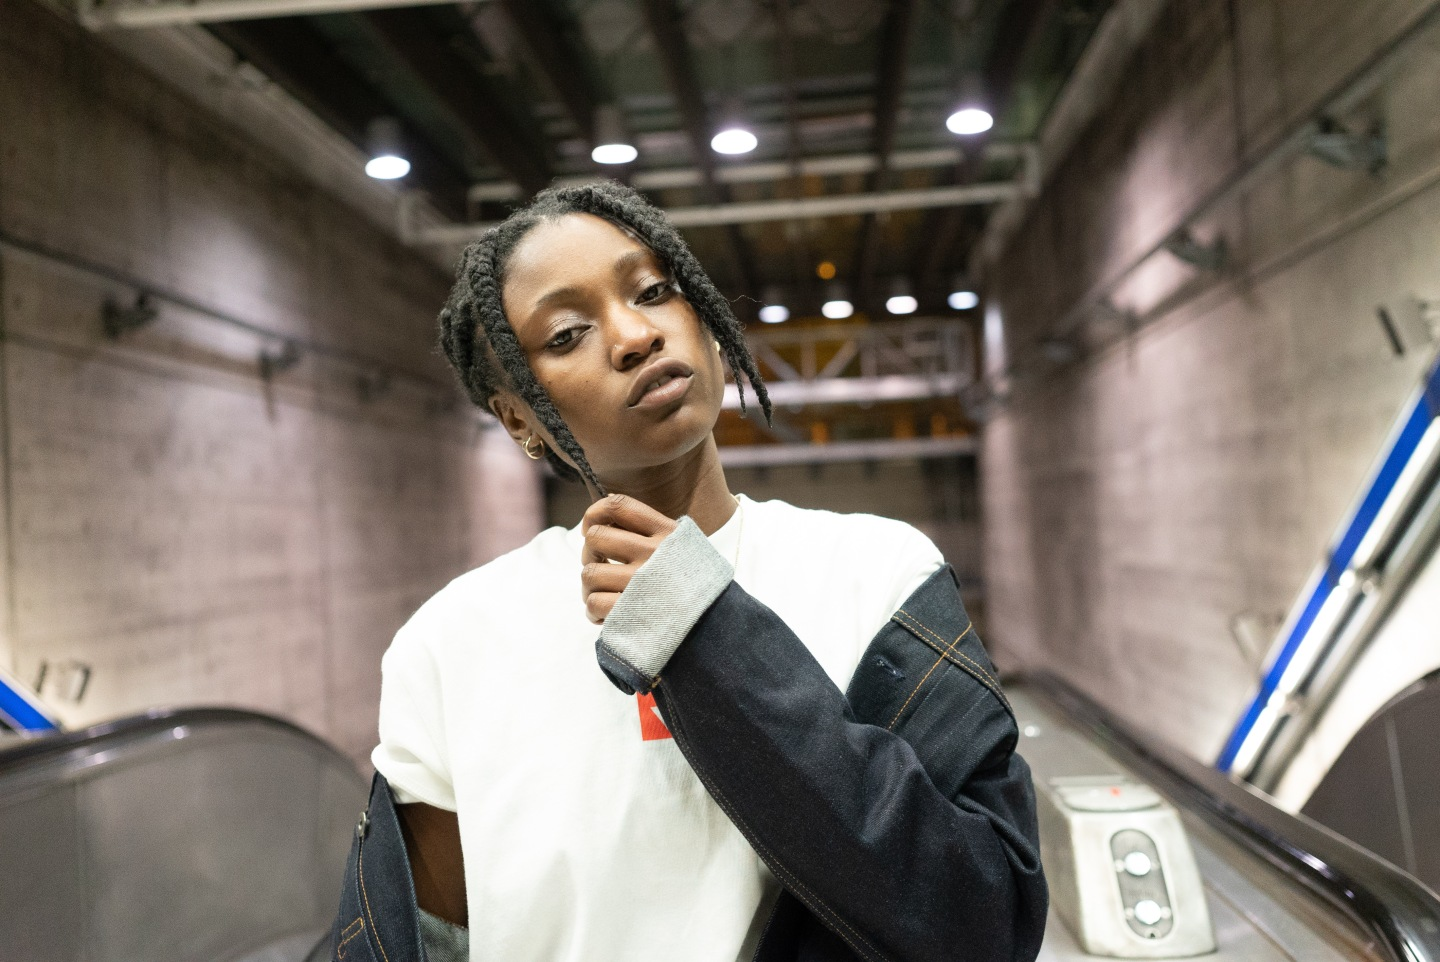 Meet Flohio, one of U.K. rap's most intriguing talents